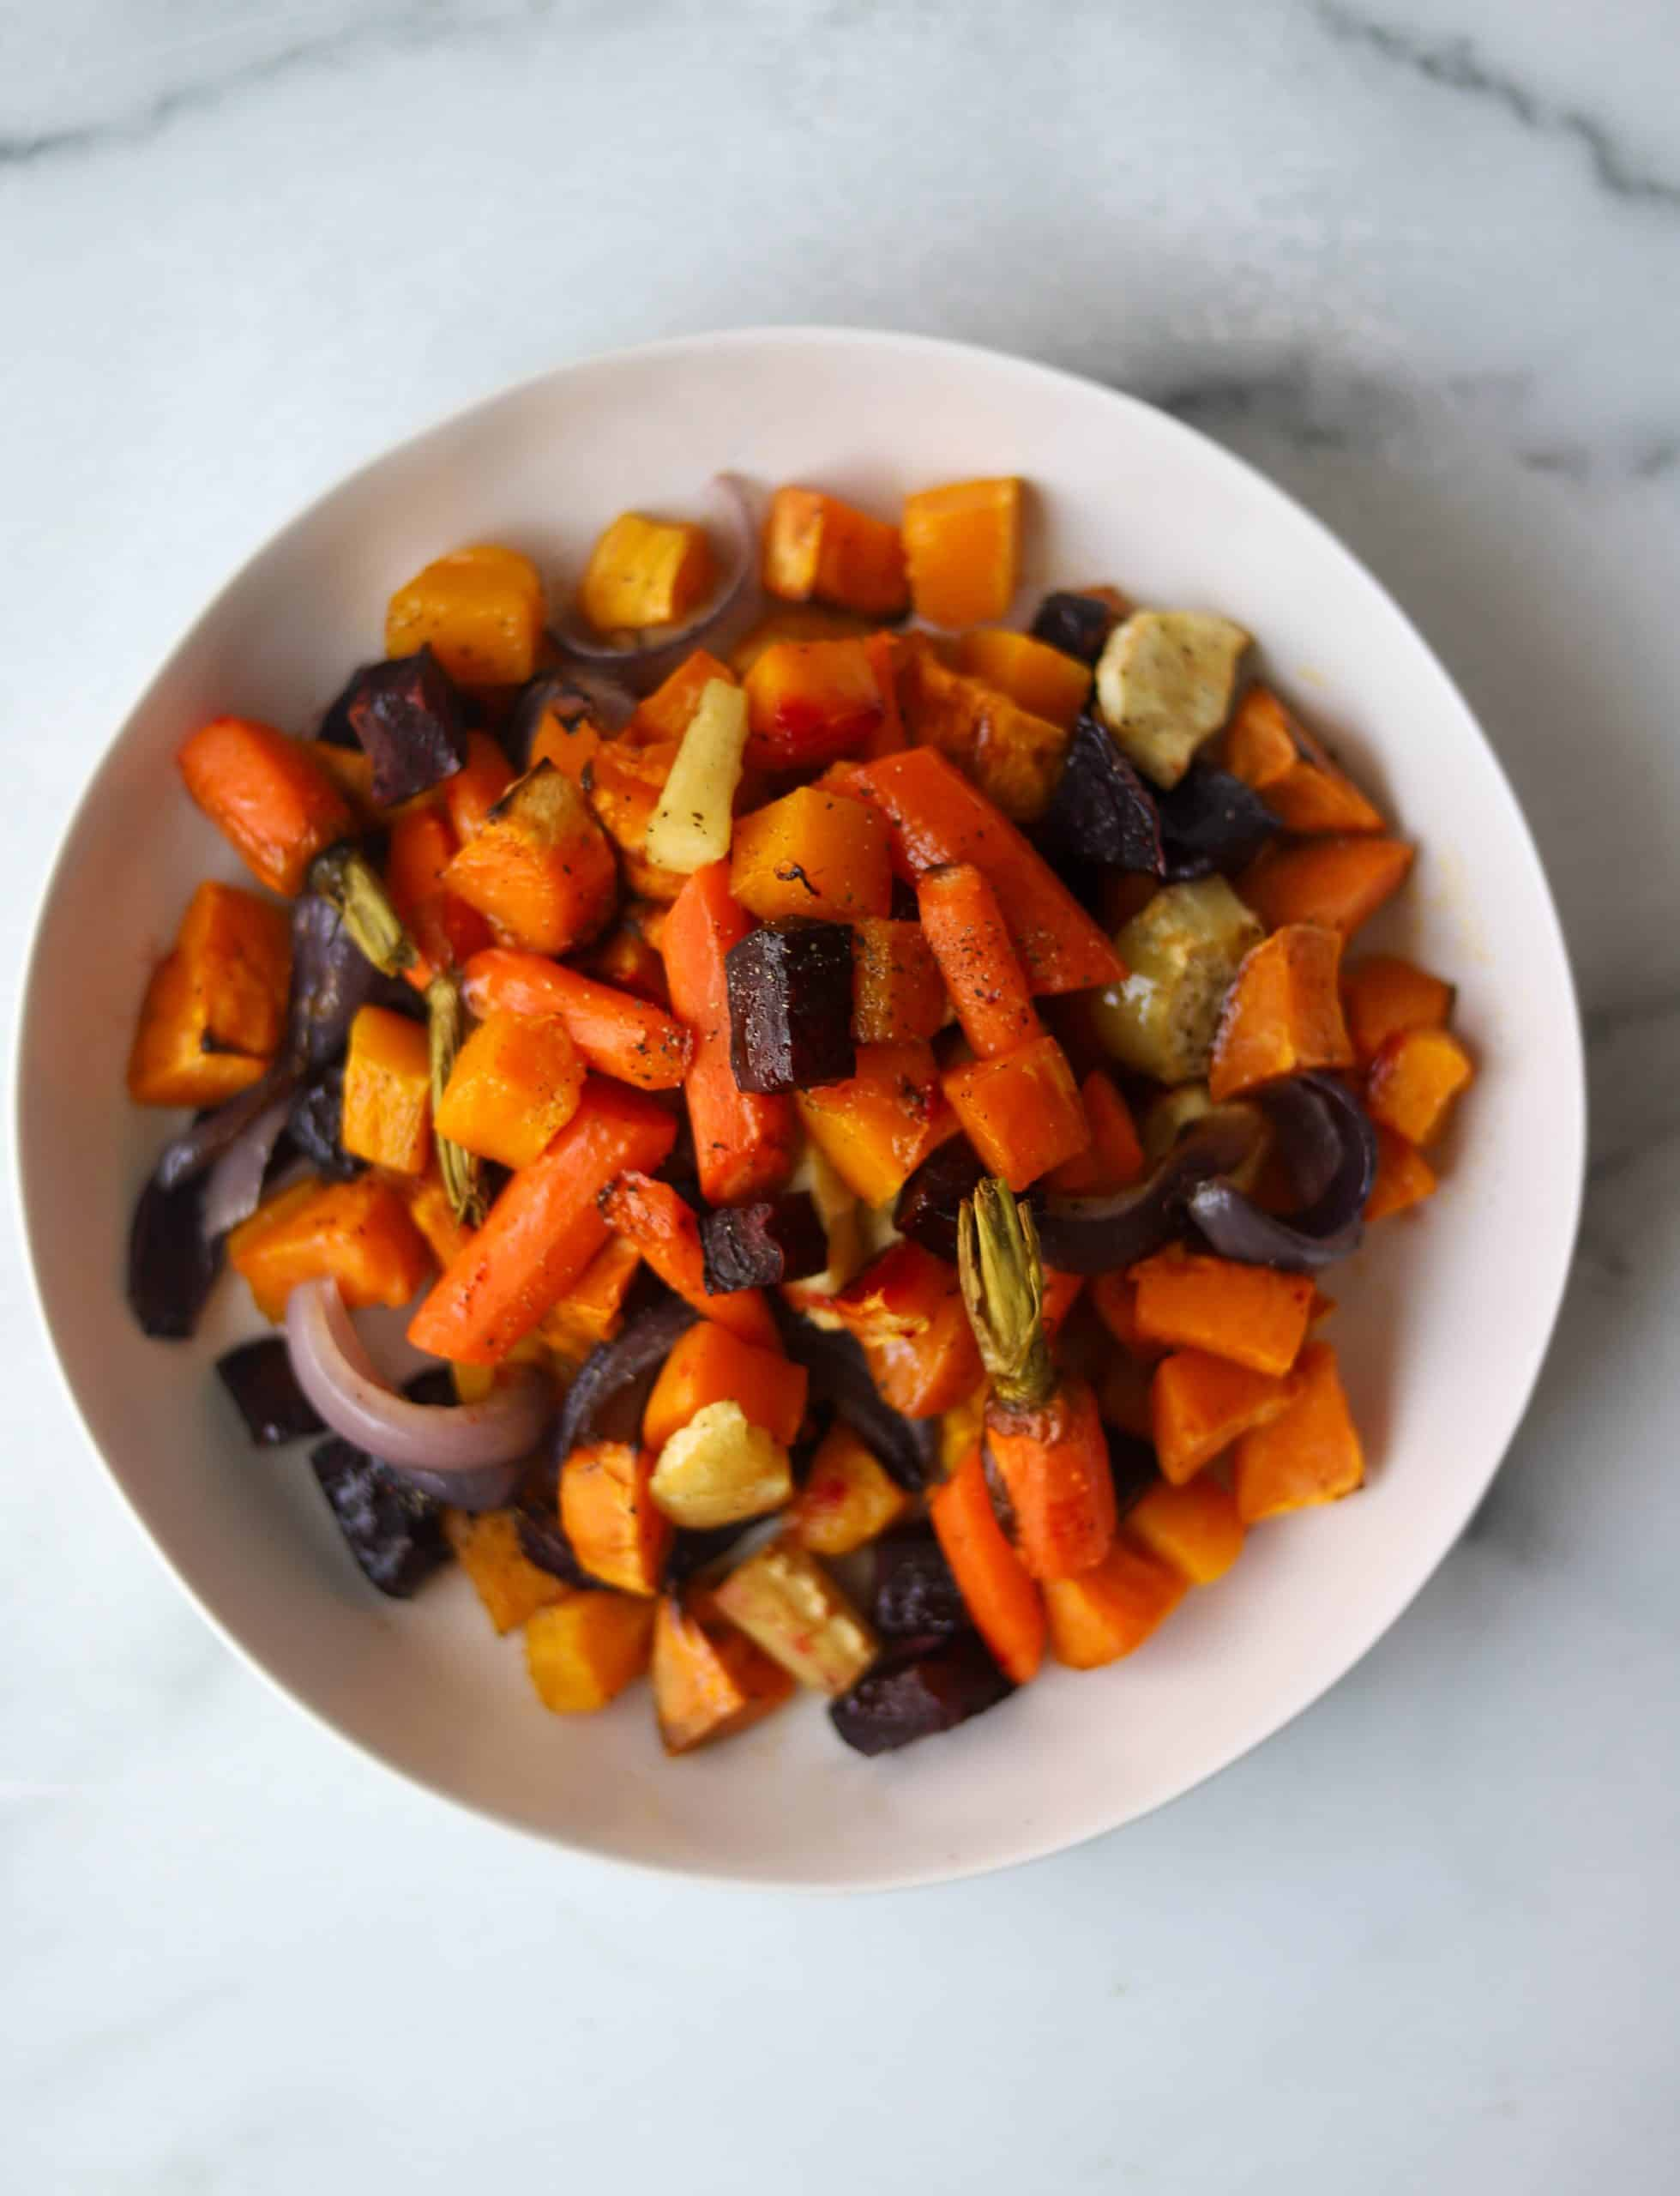 Roasted vegetables piled on each other in a white bowl.